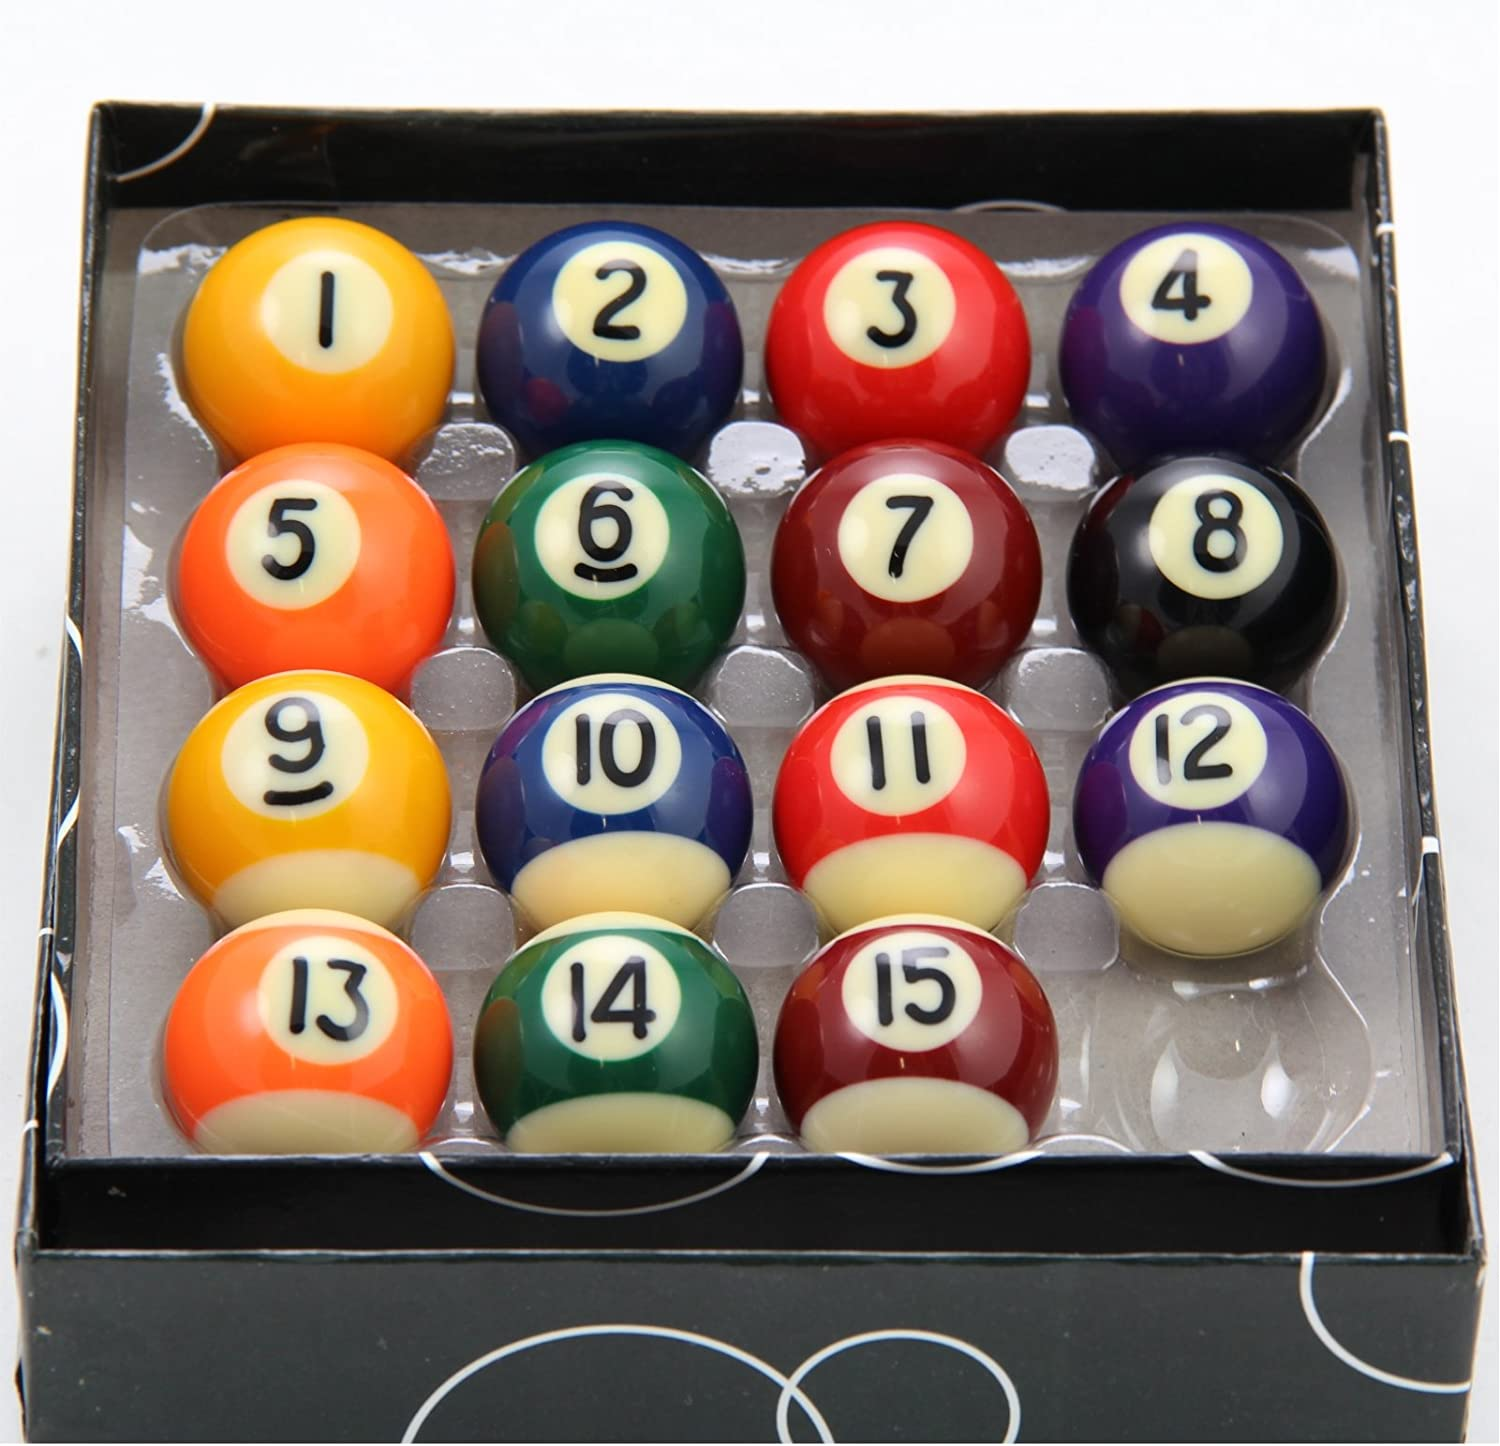 Jonny 8 Ball Set Spots and Stripes Pool Balls Juego de 15 Mini Bolas de Billar magnéticas y Rayas, Unisex Adulto: Amazon.es: Deportes y aire libre